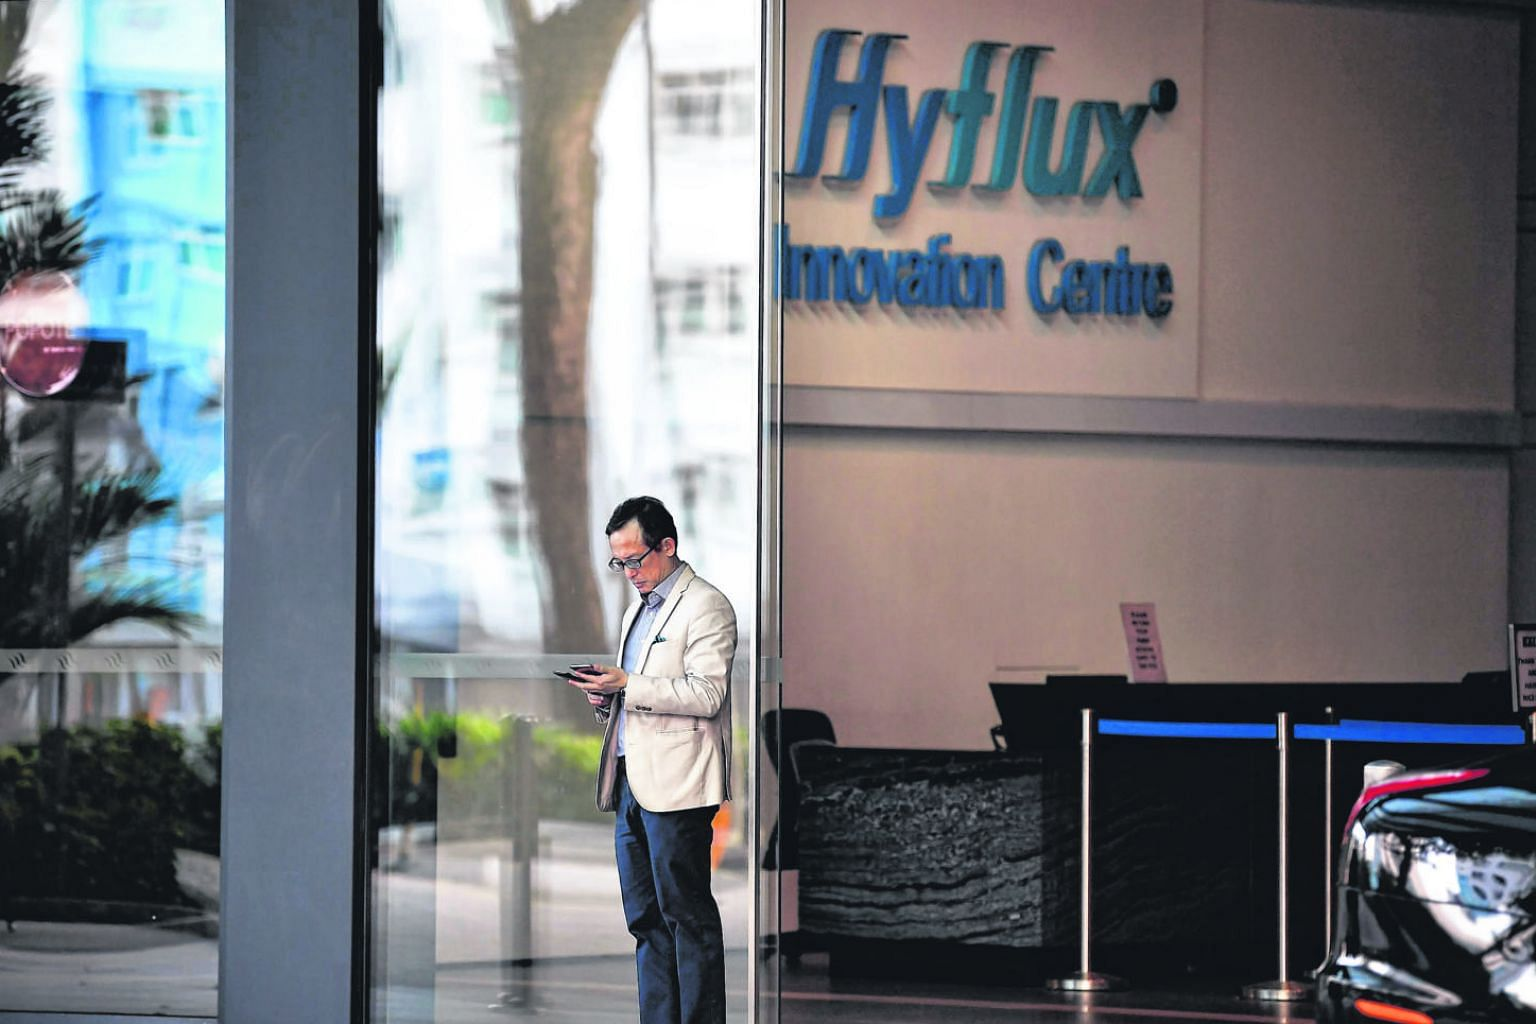 The original proposed rescue package with Utico involves the utility taking an 88 per cent stake in Hyflux.